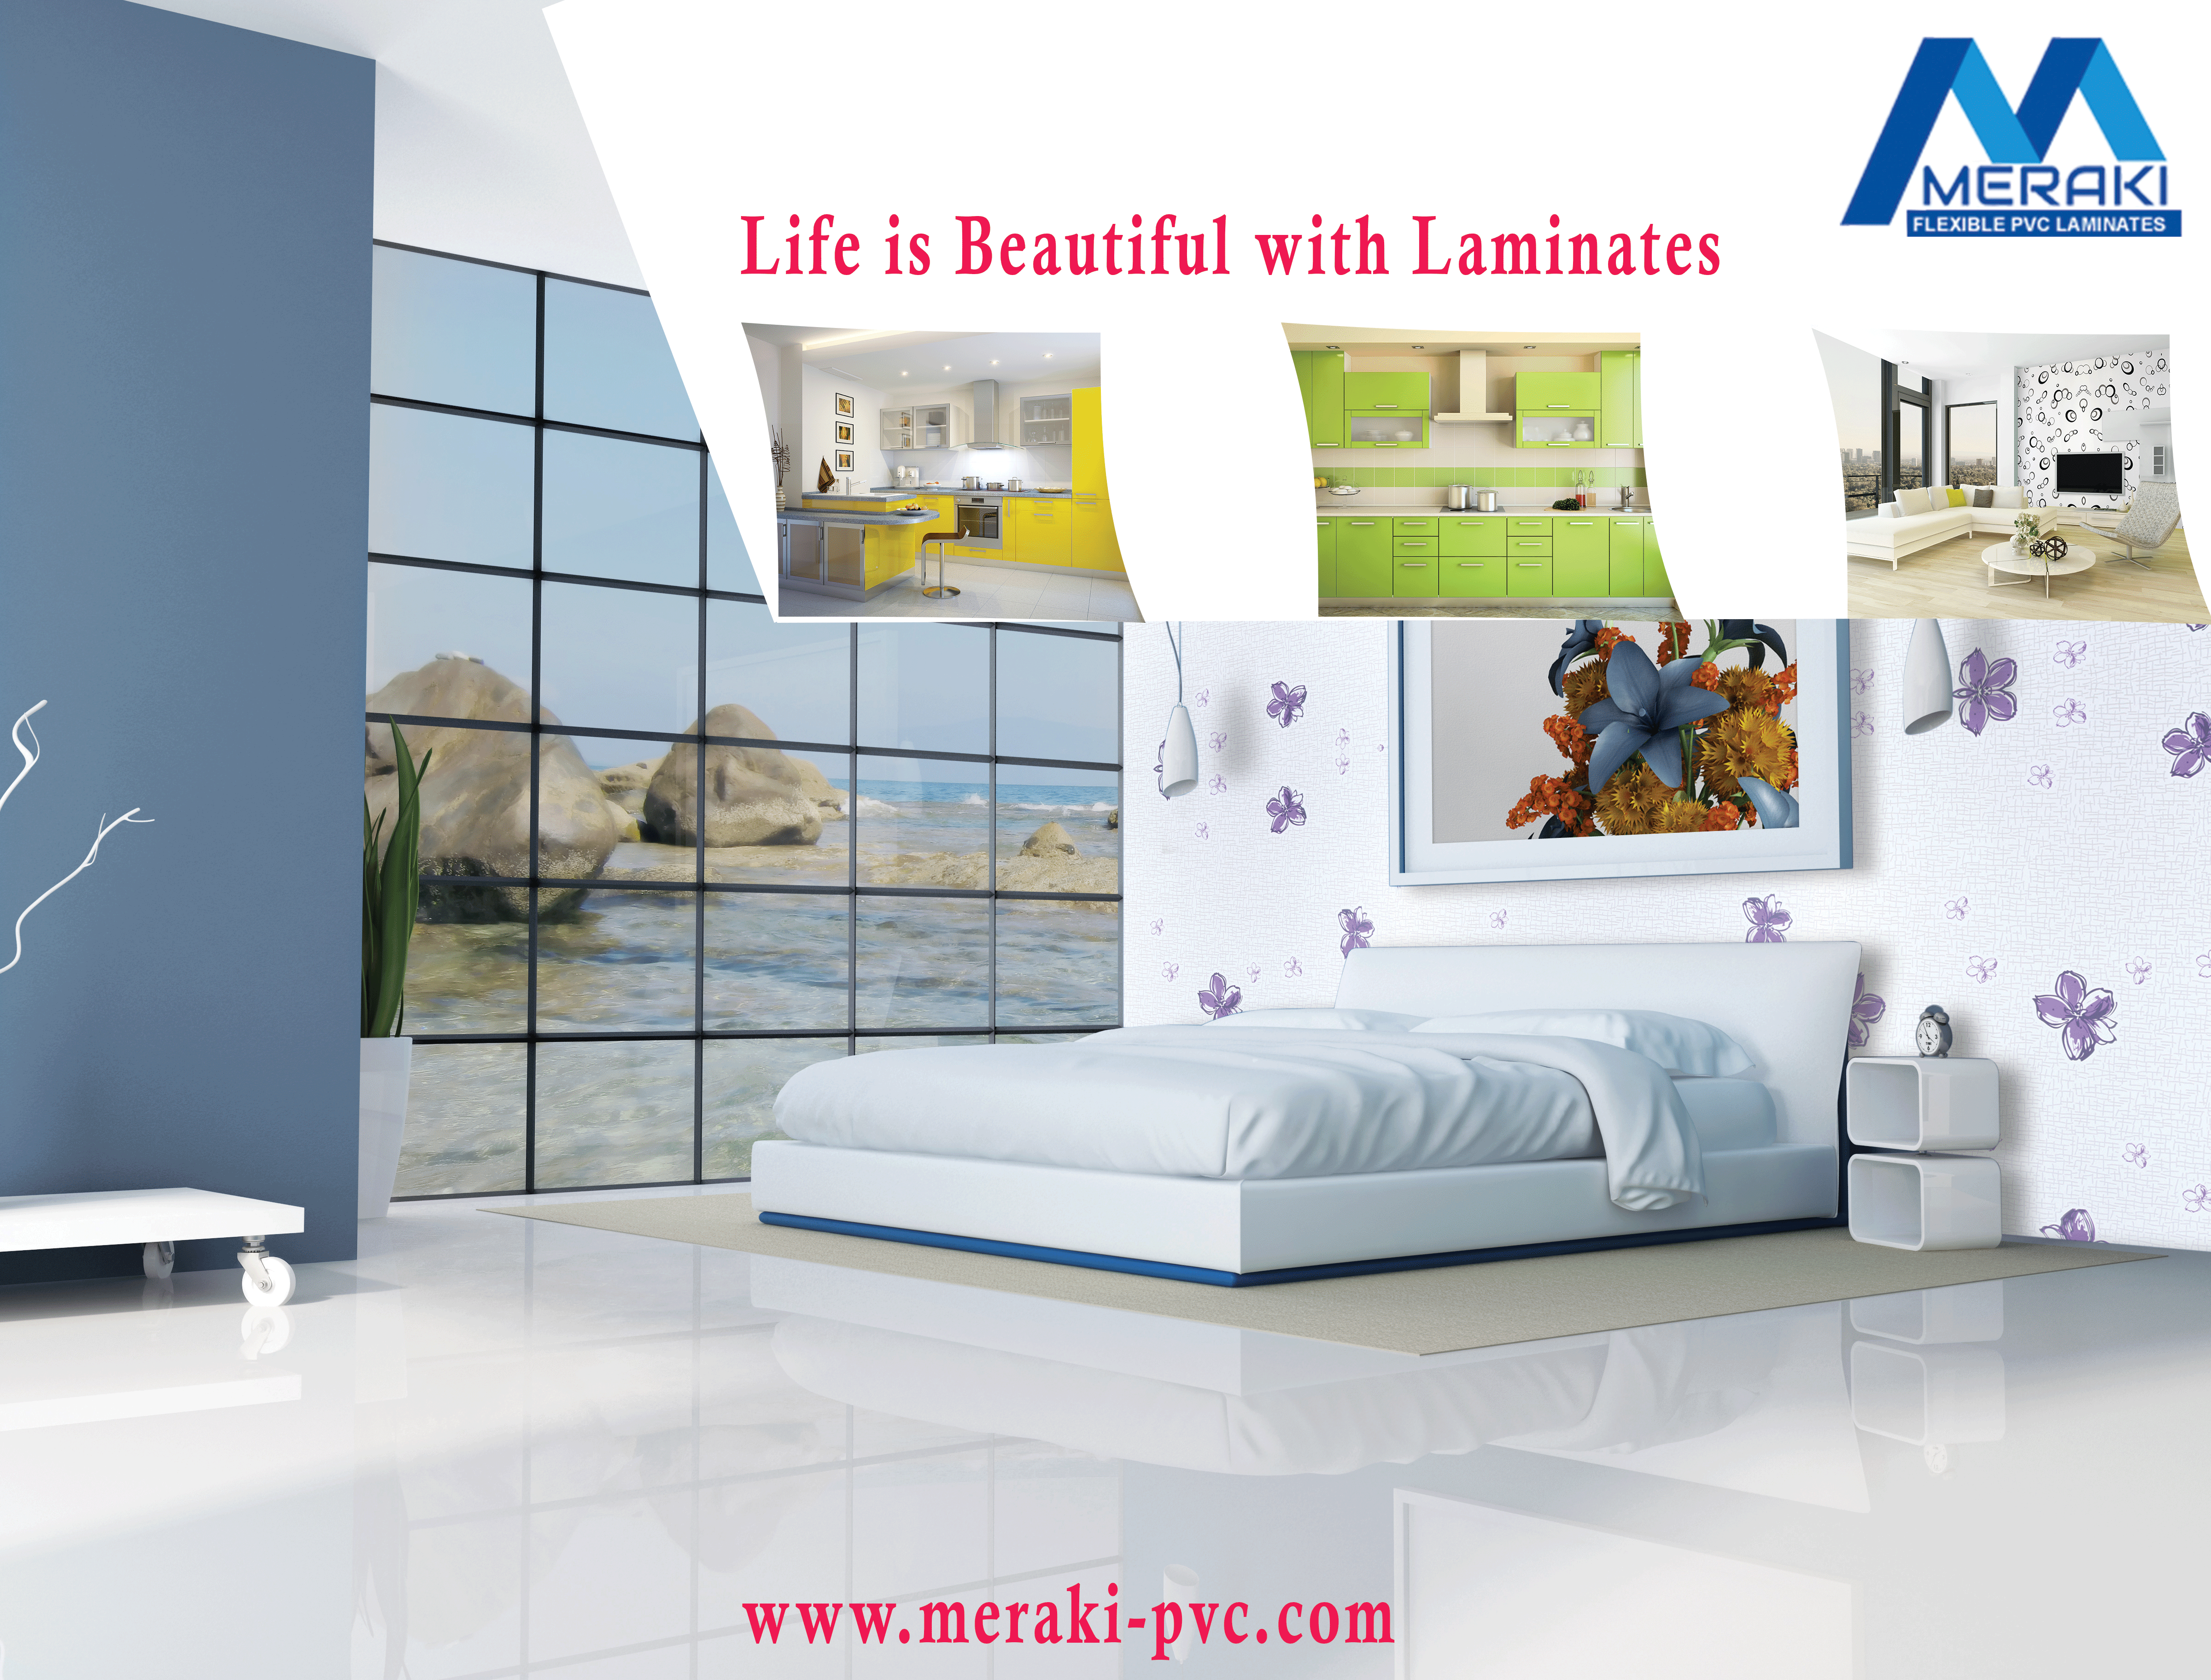 Life is beautiful with #Meraki Laminates #Laminates #InteriorIdea ...